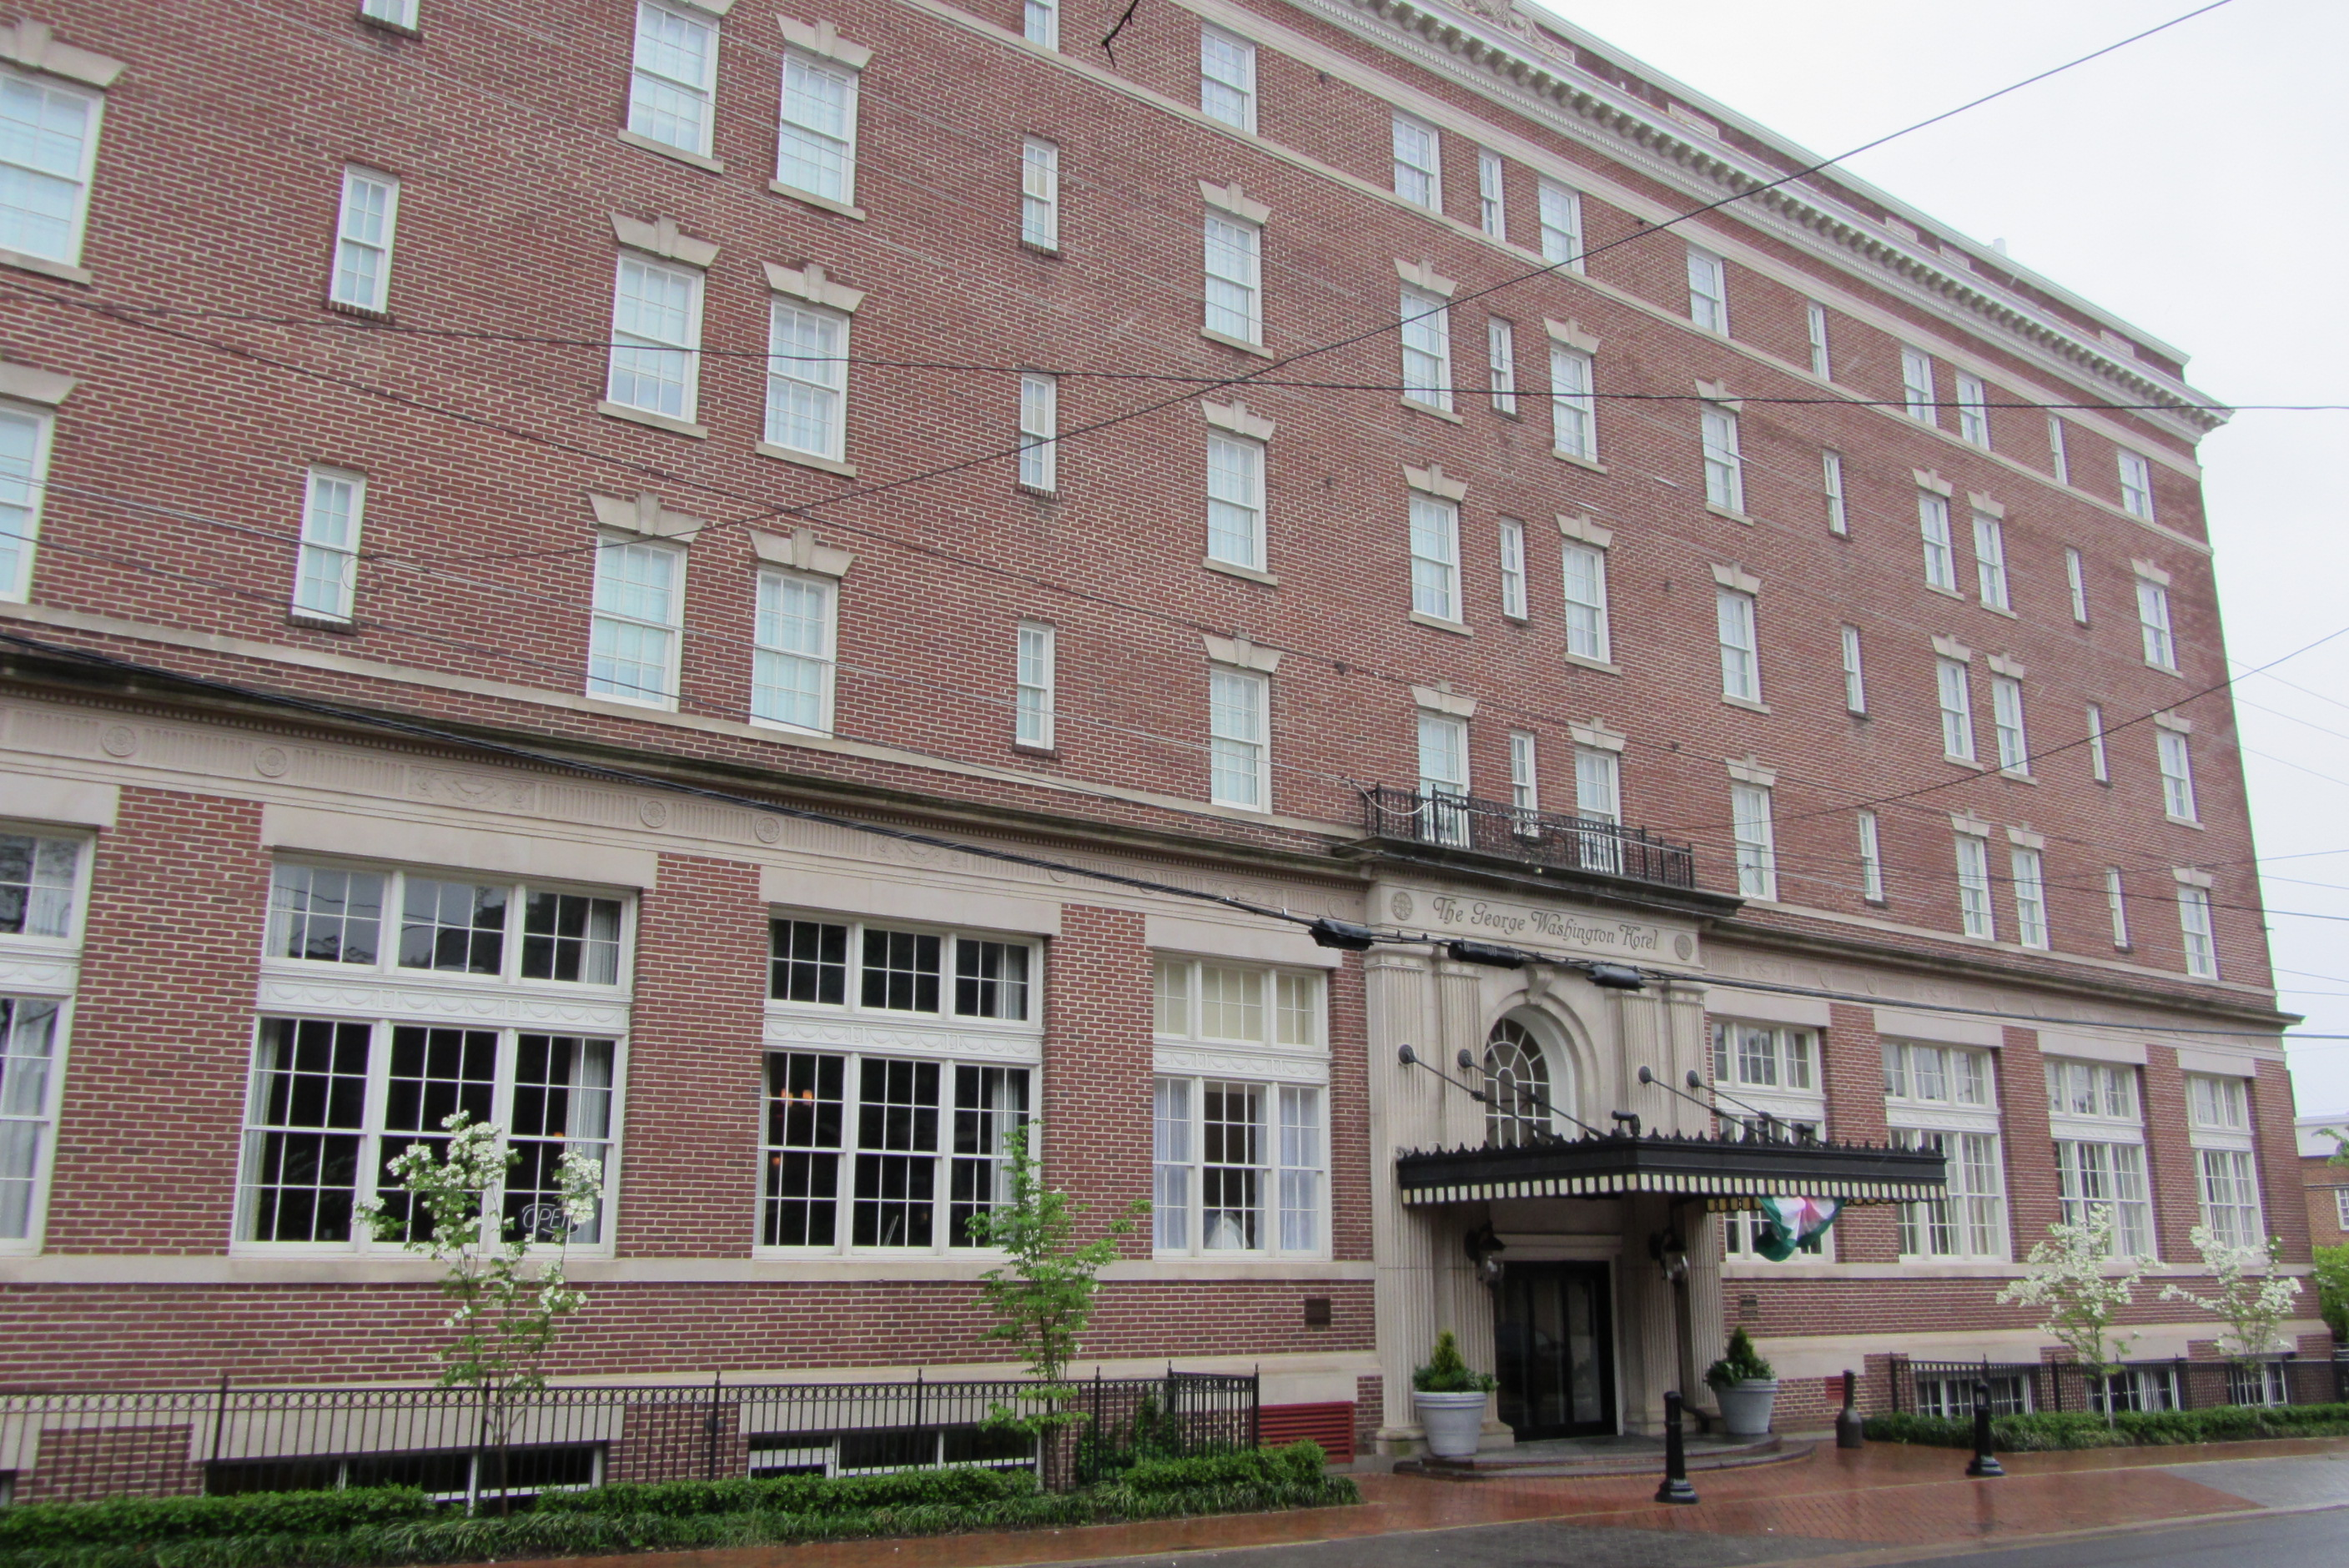 Exterior view of The George Washington Hotel